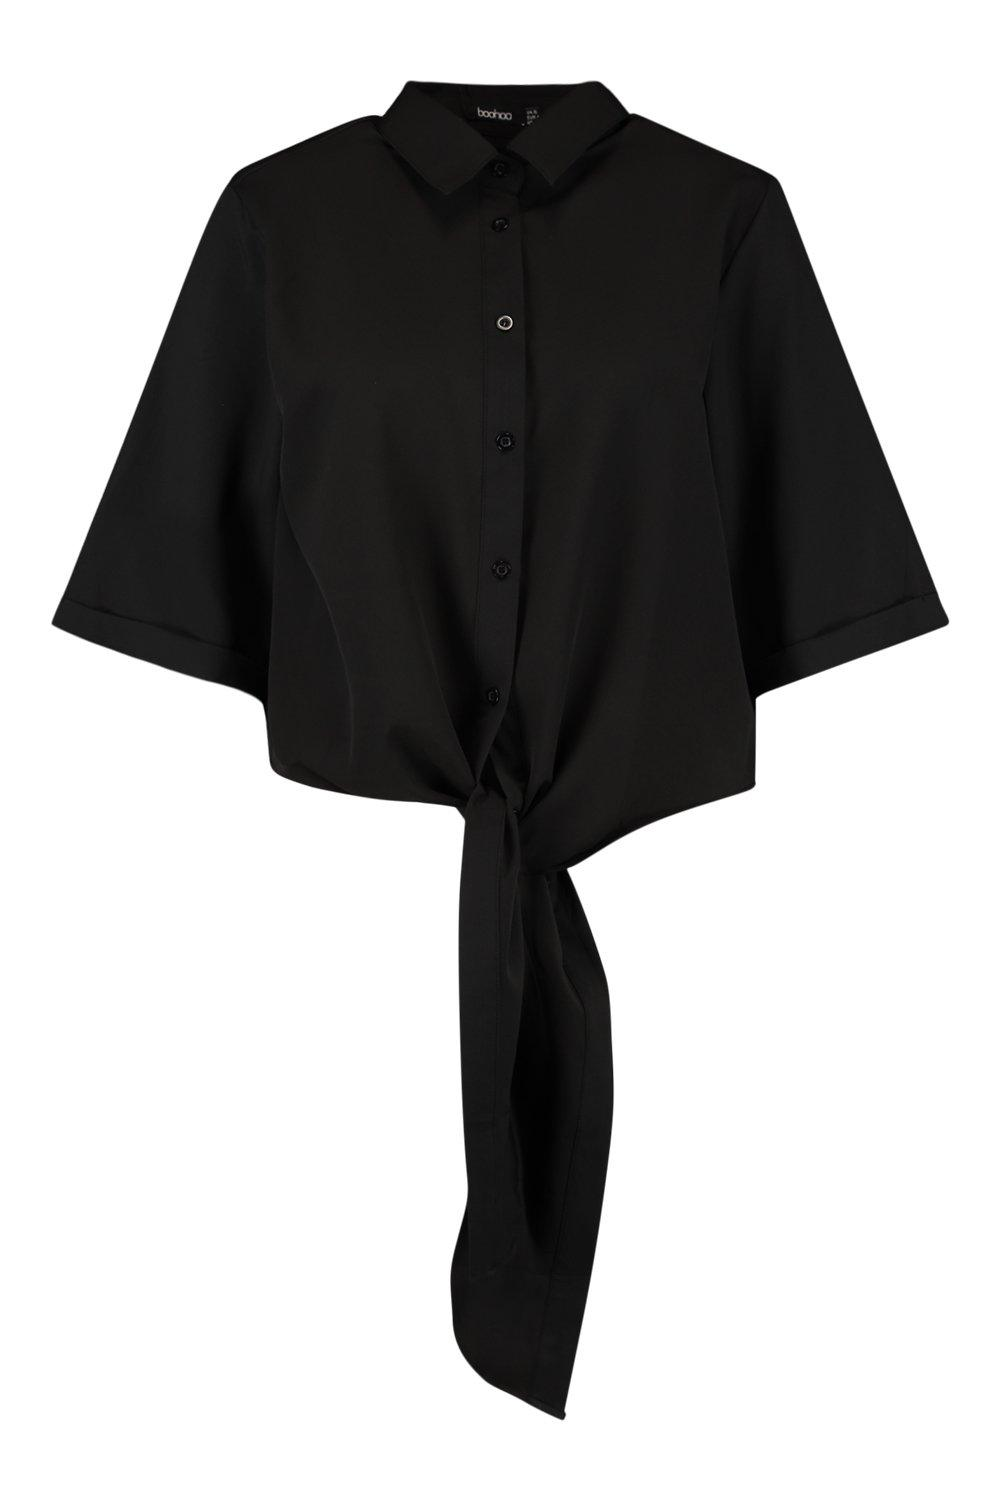 Utility Plus Shirt black Shirt black Plus Utility Shirt black Plus Plus Utility AOC6Xwq